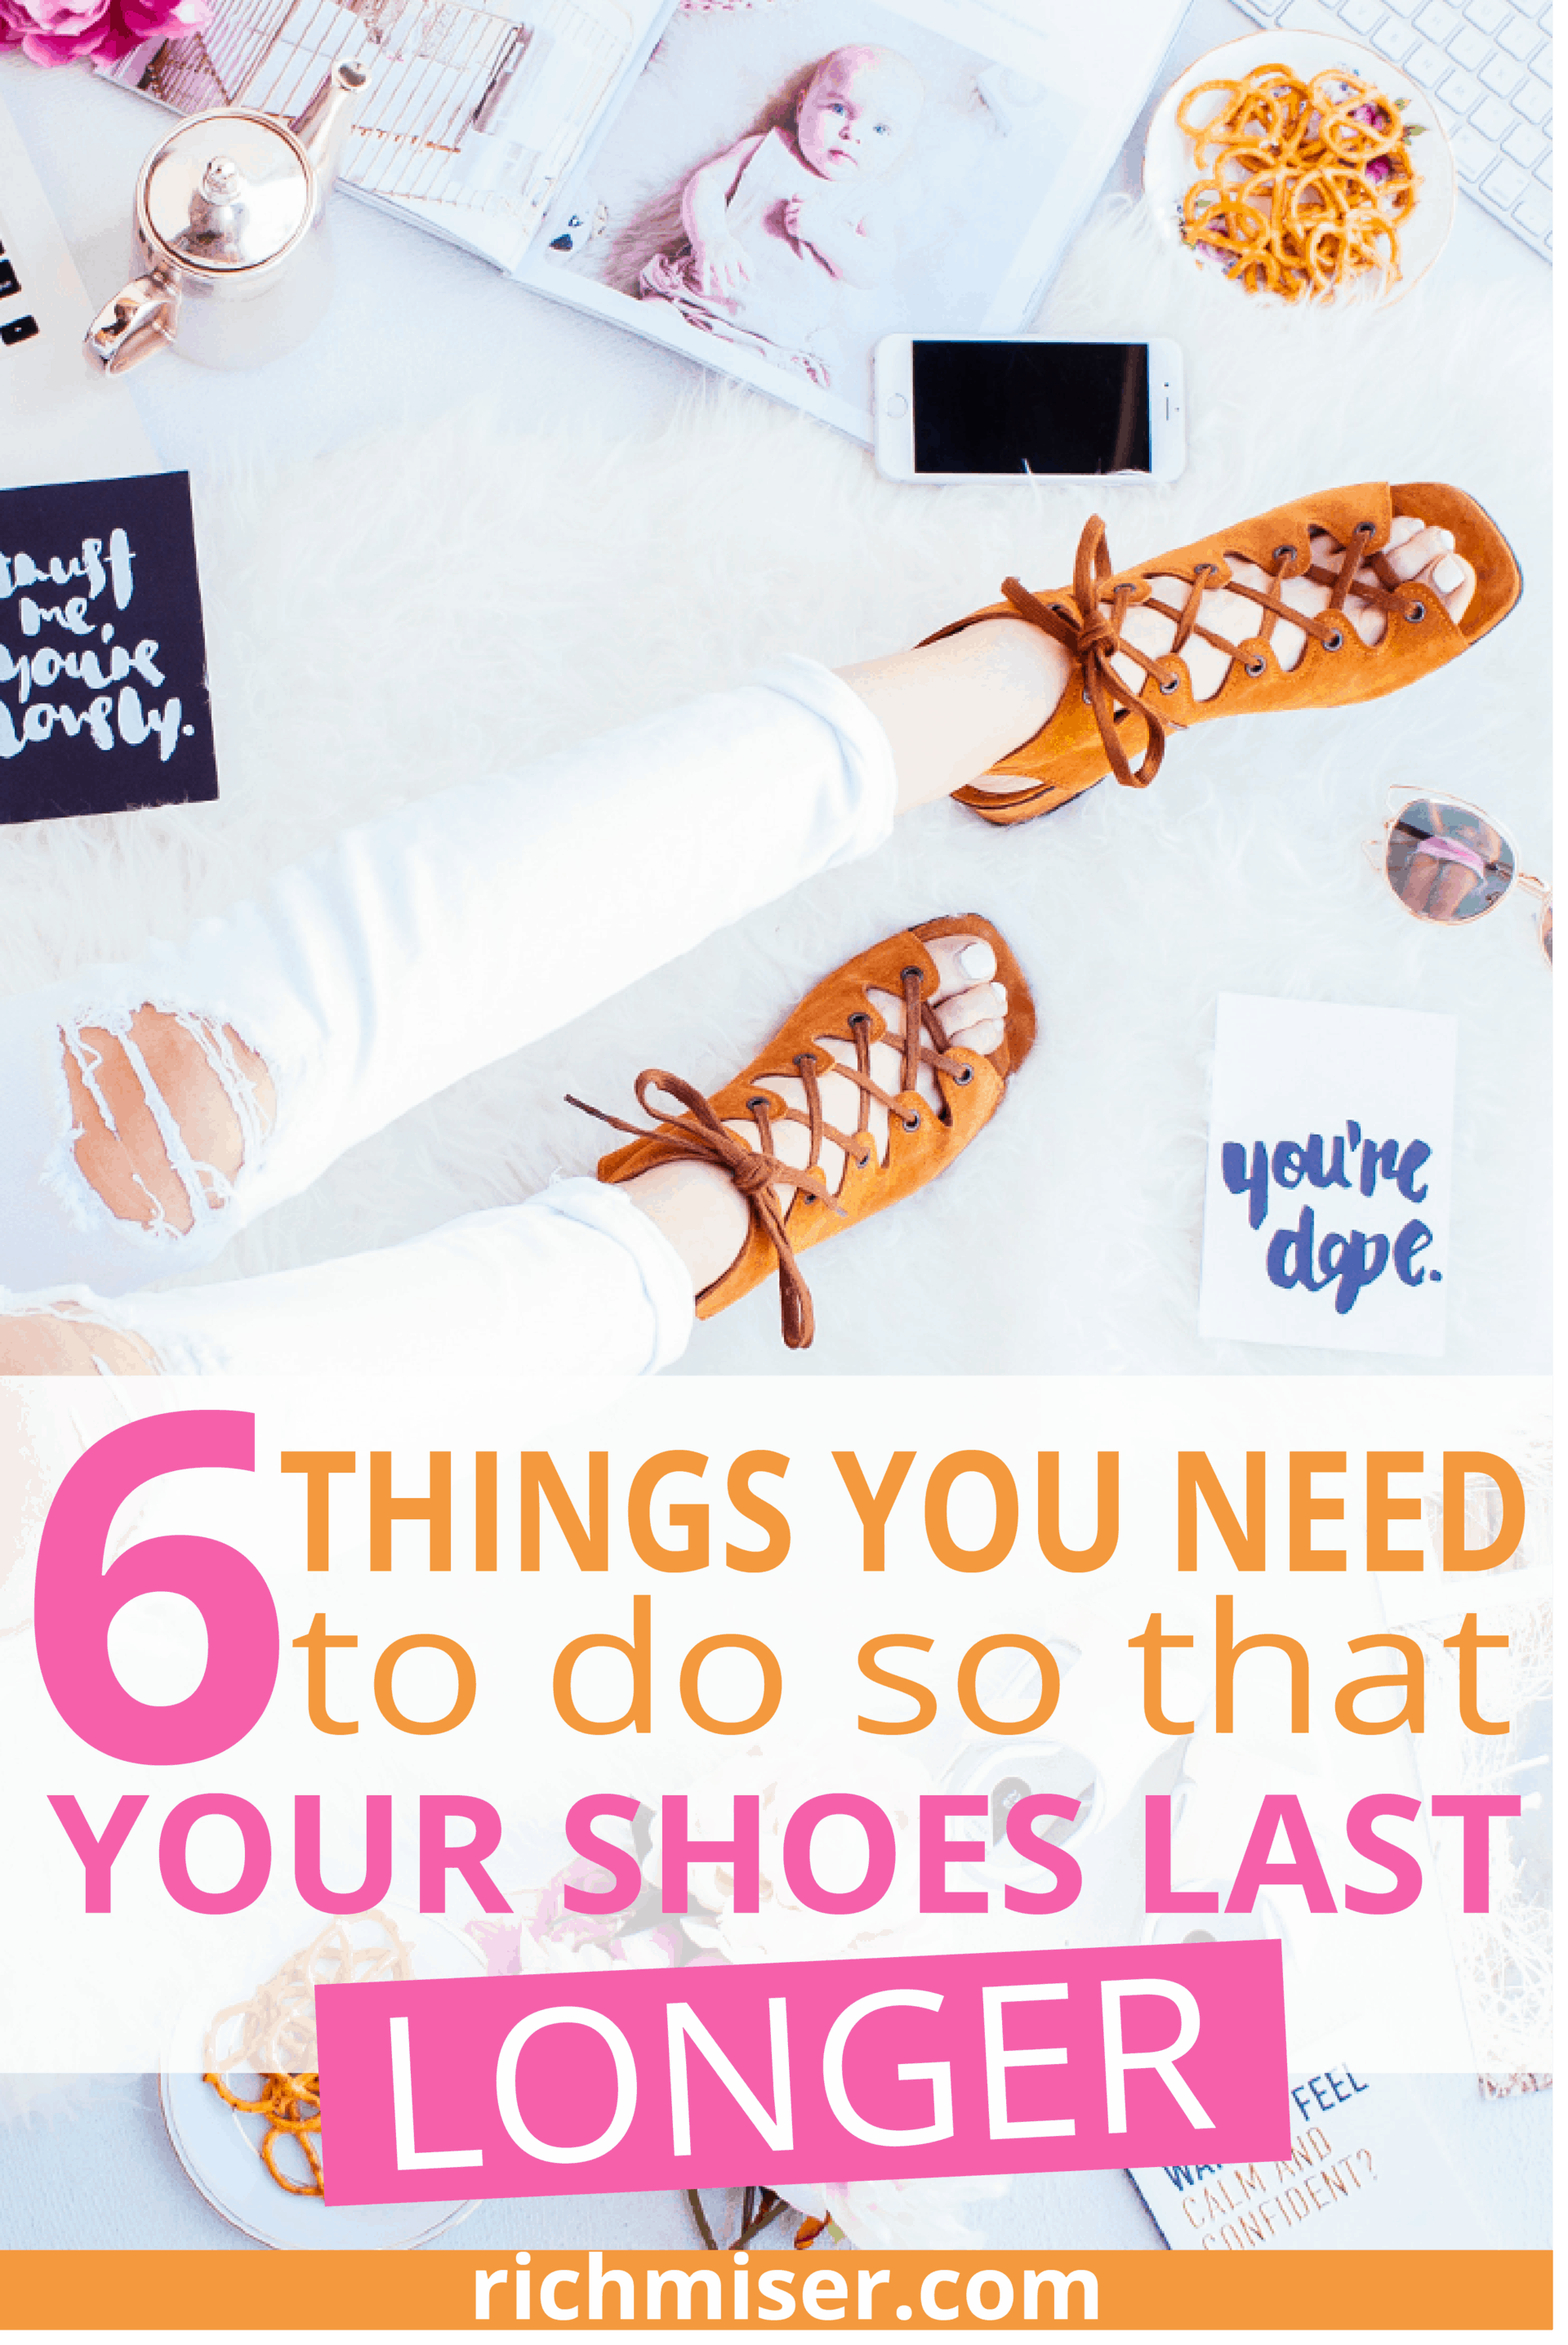 6 Things You Need To Do So That Your Shoes Last Longer